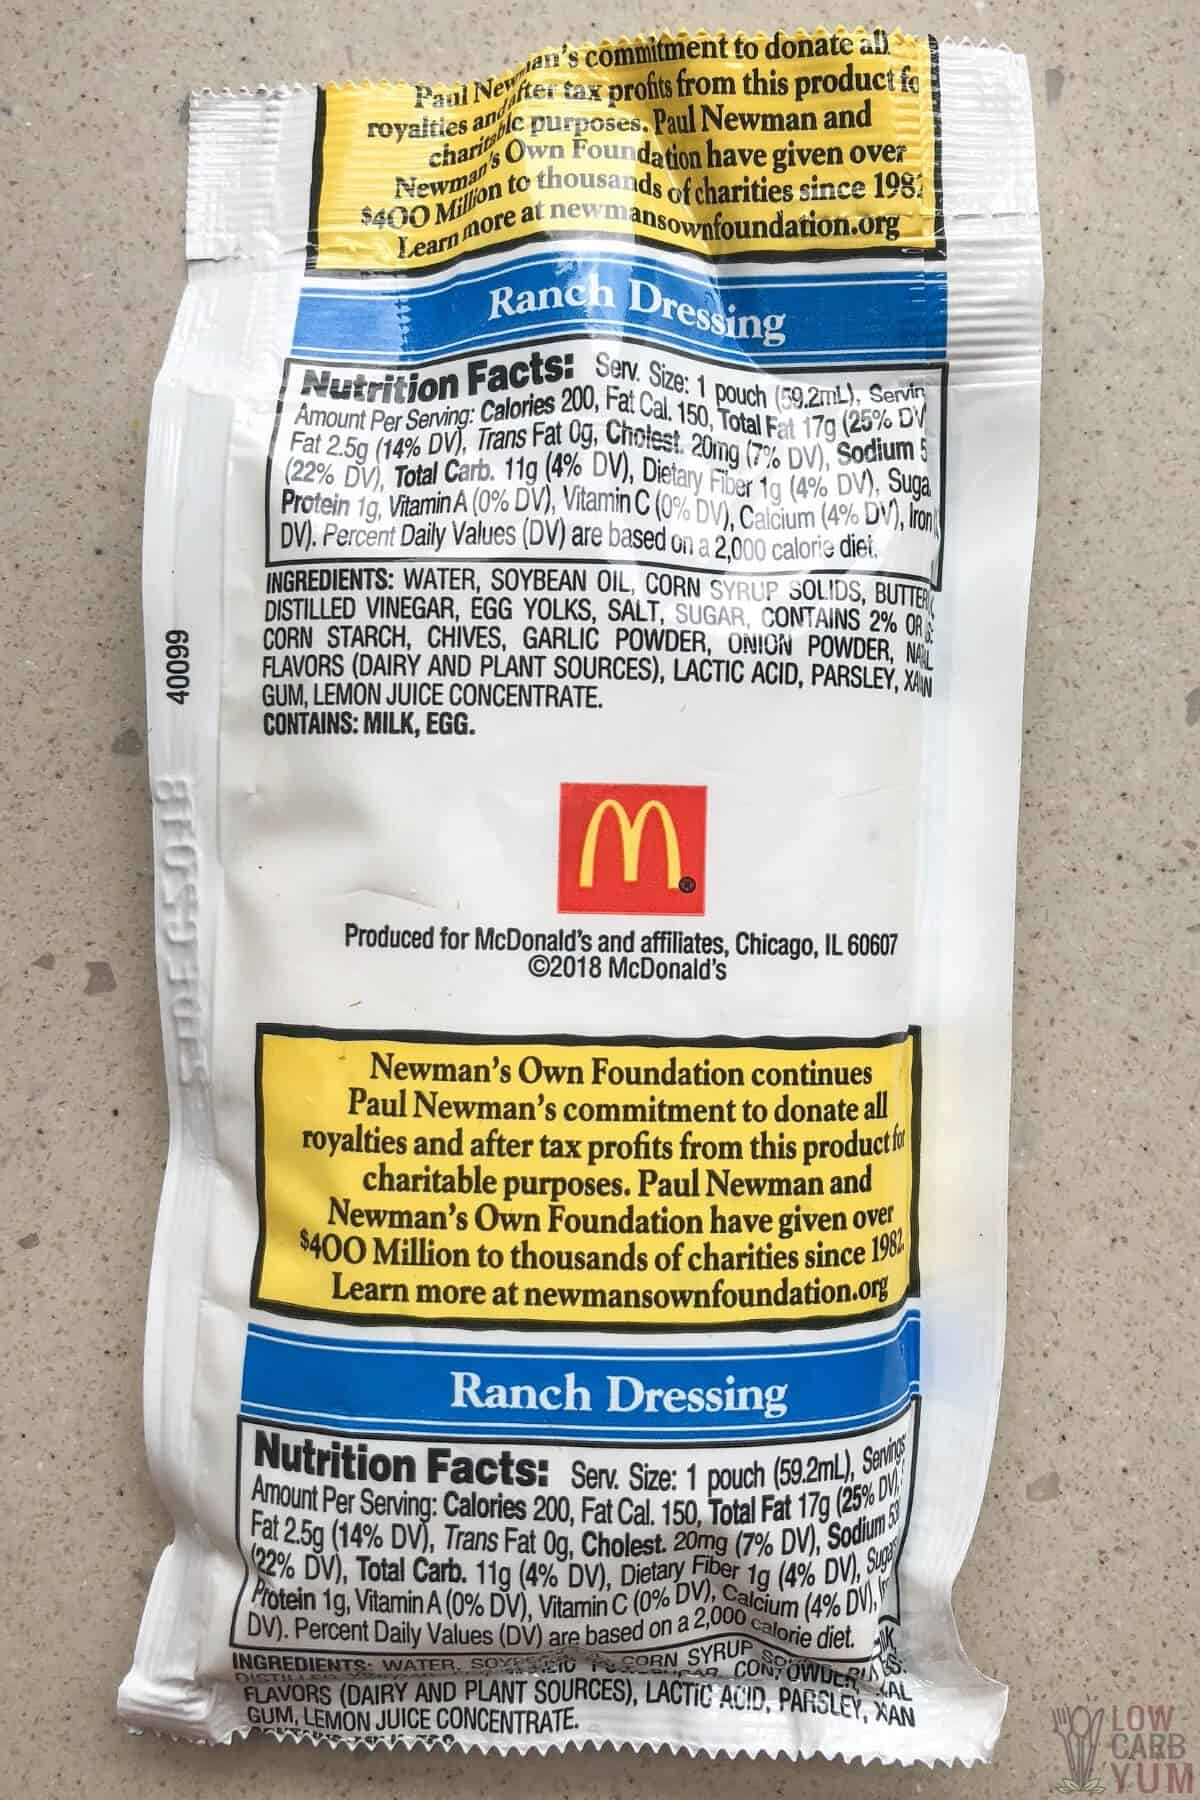 mcdonalds ranch dressing packet label